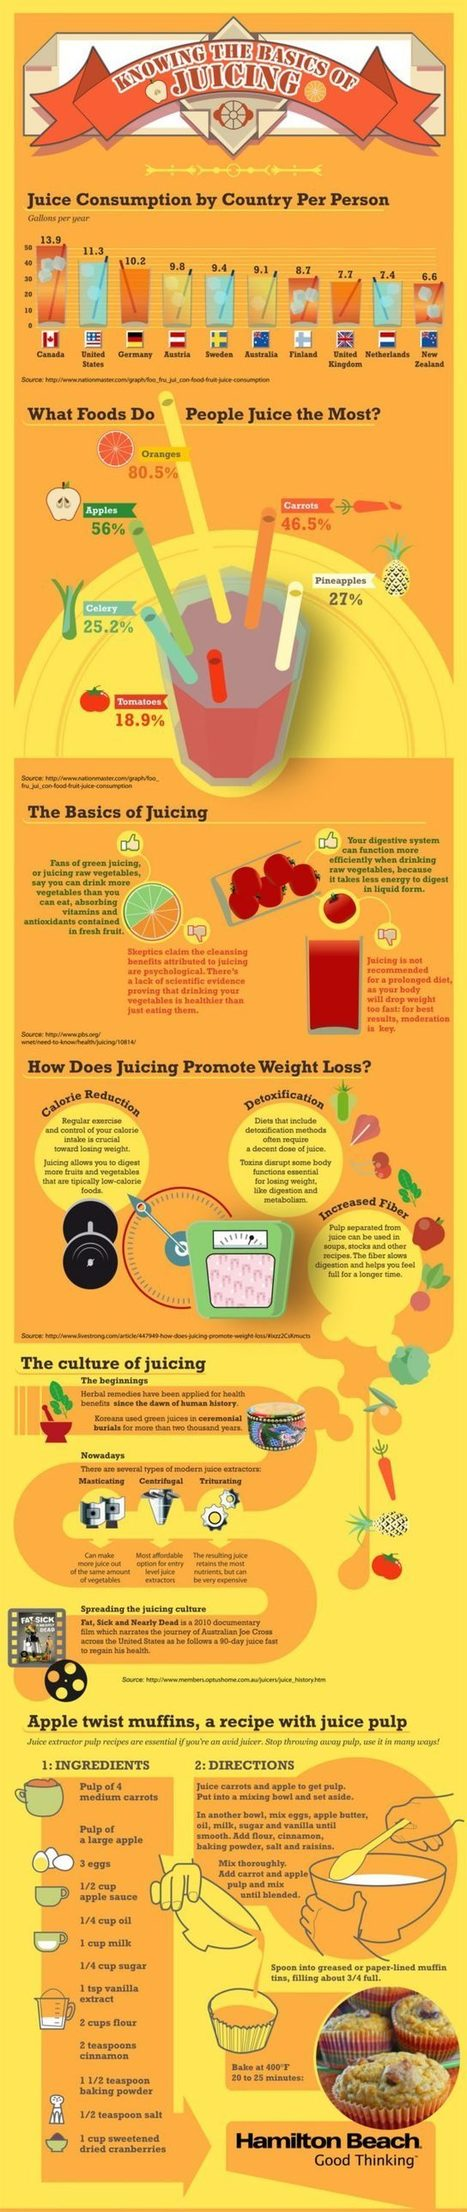 So You Want to Start Juicing Infographic | The Best Infographics | Scoop.it